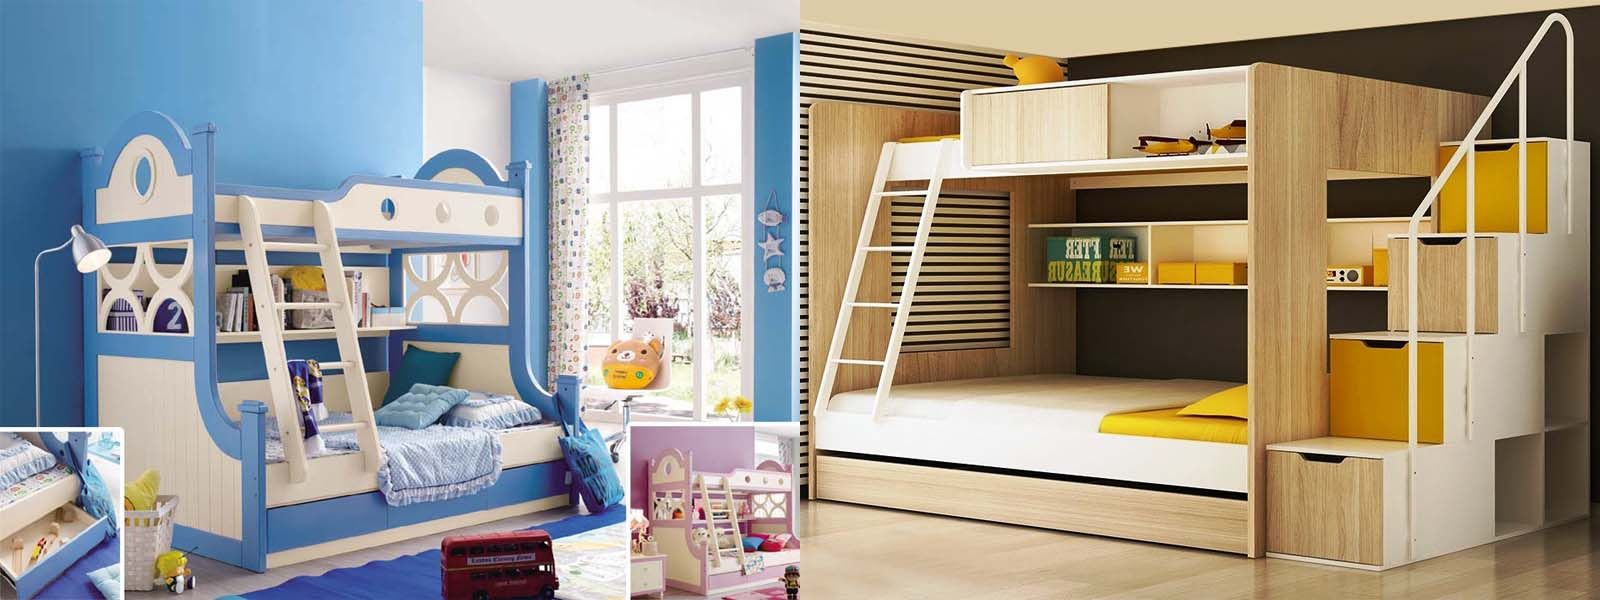 Best Bunkbeds Our Bunk Beds Are Robust In Design And Meant To 400 x 300